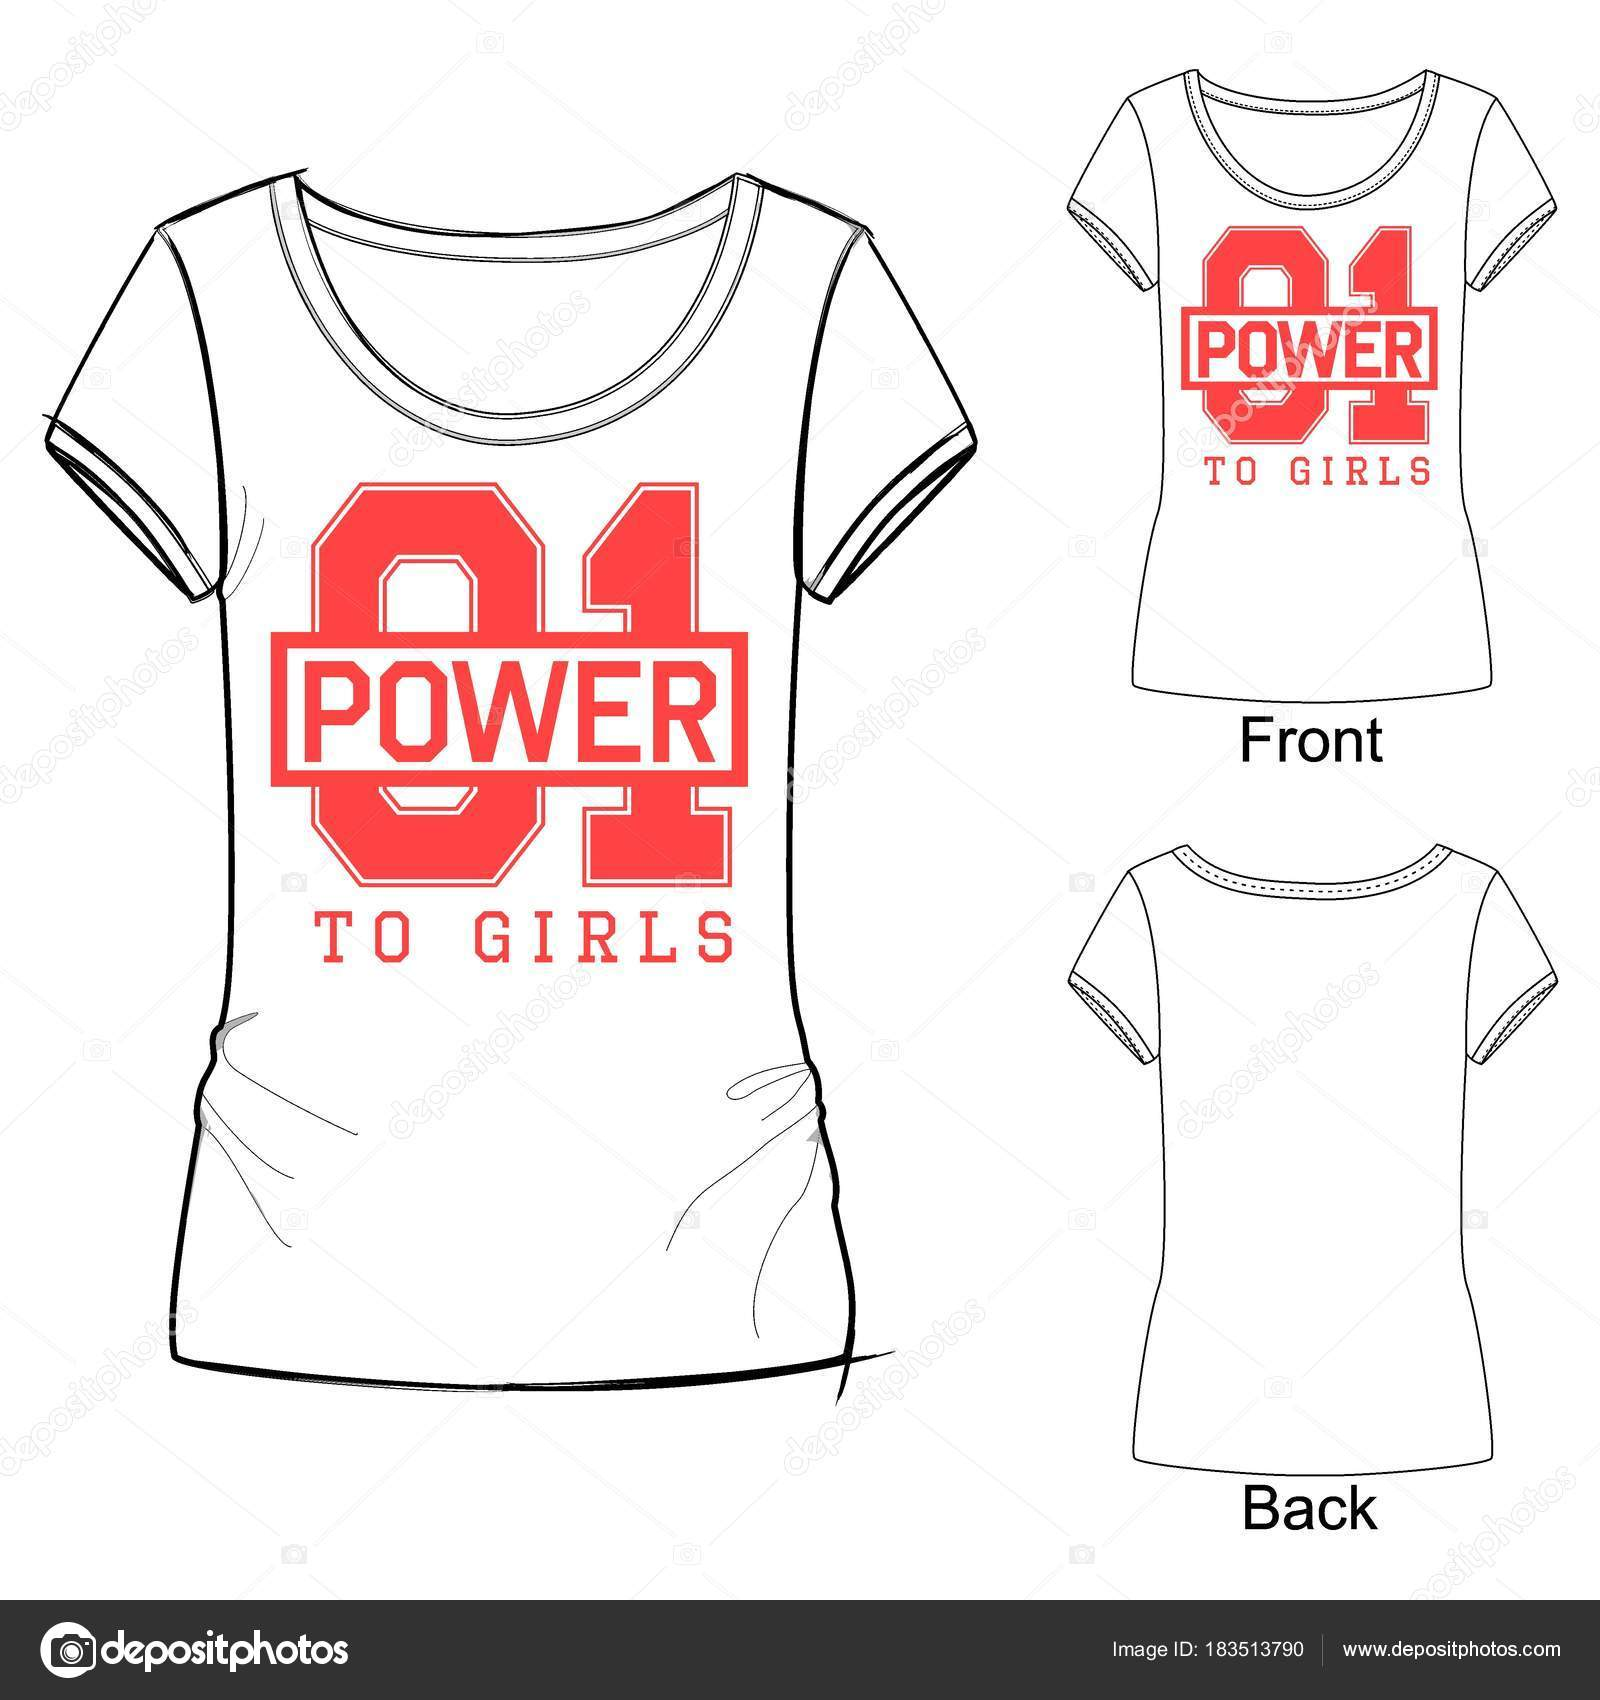 Fashion Sport T Shirt Print For Girls With Lettering 01 Power To